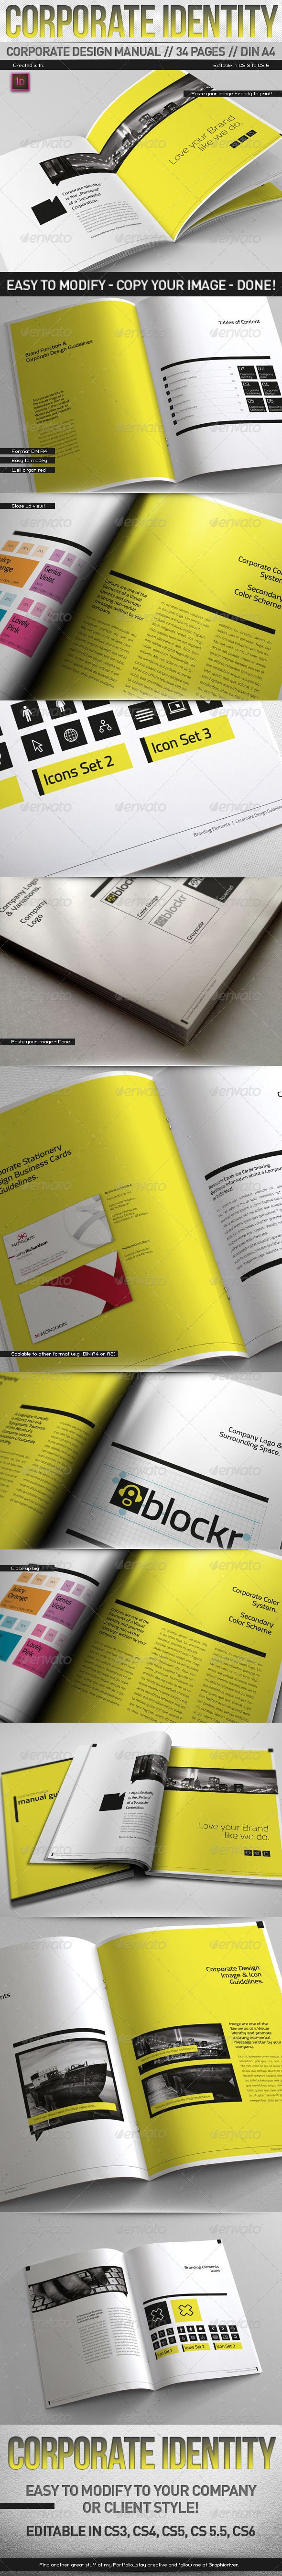 Corporate Design Manual Guide DIN A4 // 34 Pages Get the source files for download: http://graphicriver.net/item/corporate-design-manual-guide-din-a4-34-pages/4923120